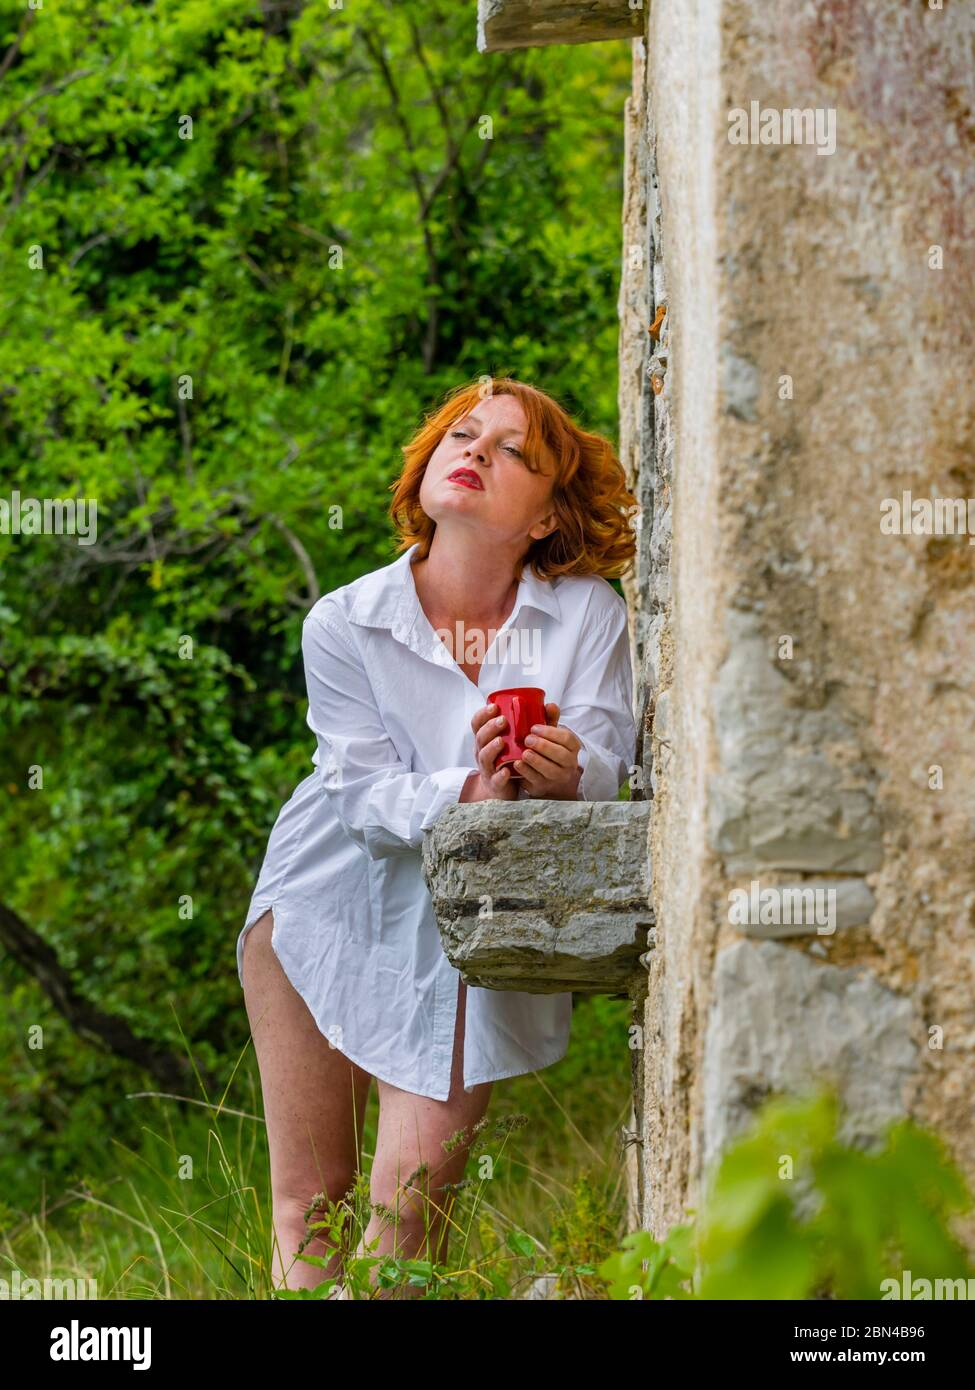 Ginger hair curly curls redhaired redhair midadult woman outdoors in remote abandoned place holding hand hands coffee Red cup looking away serious Stock Photo